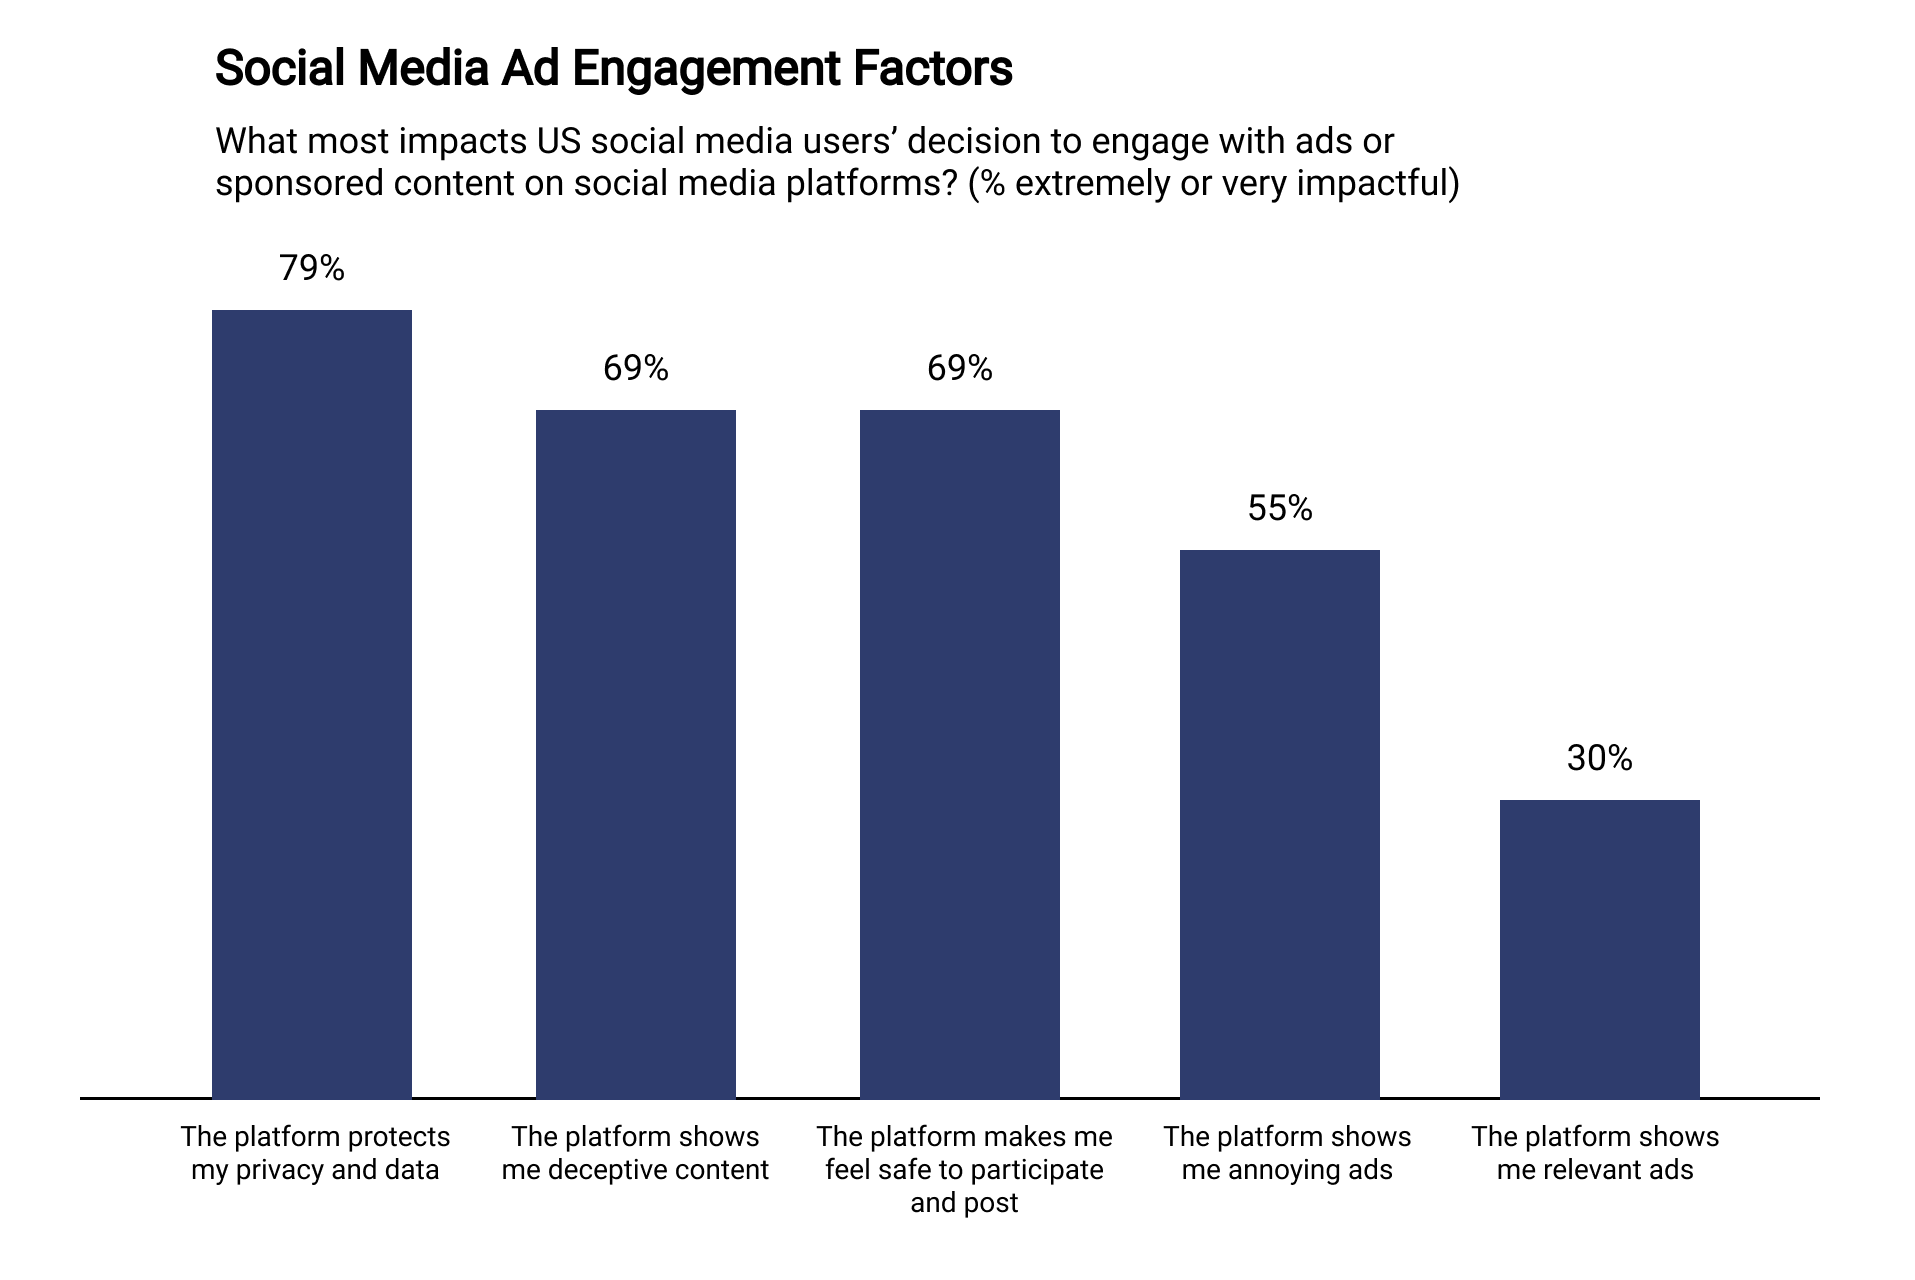 Social-Media-Ad-Engagement-Factors.png